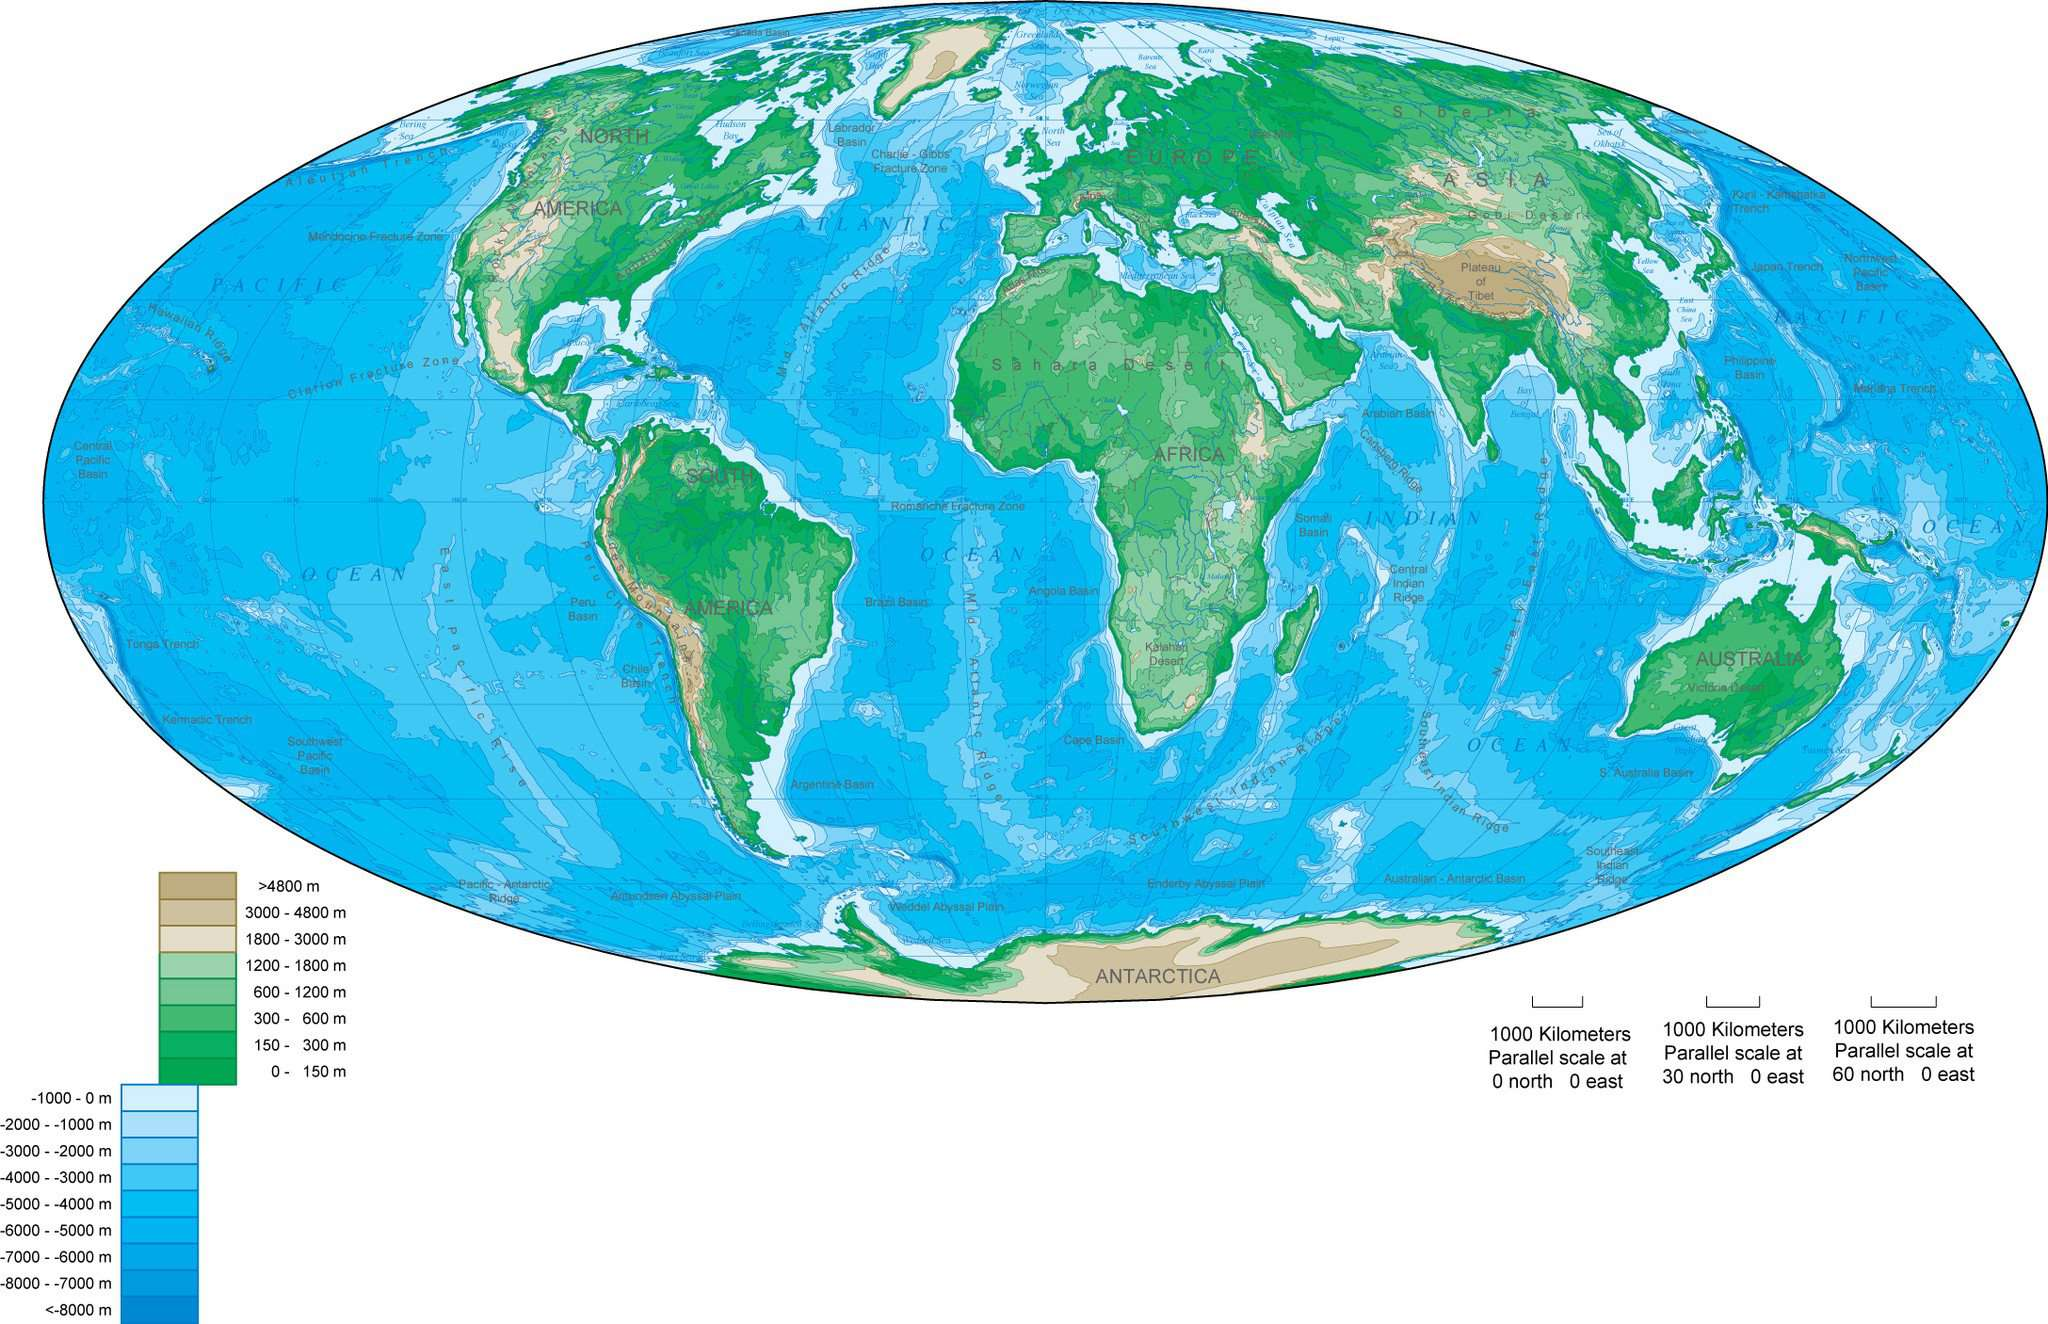 World Map with Contours, Oval, Europe Centered